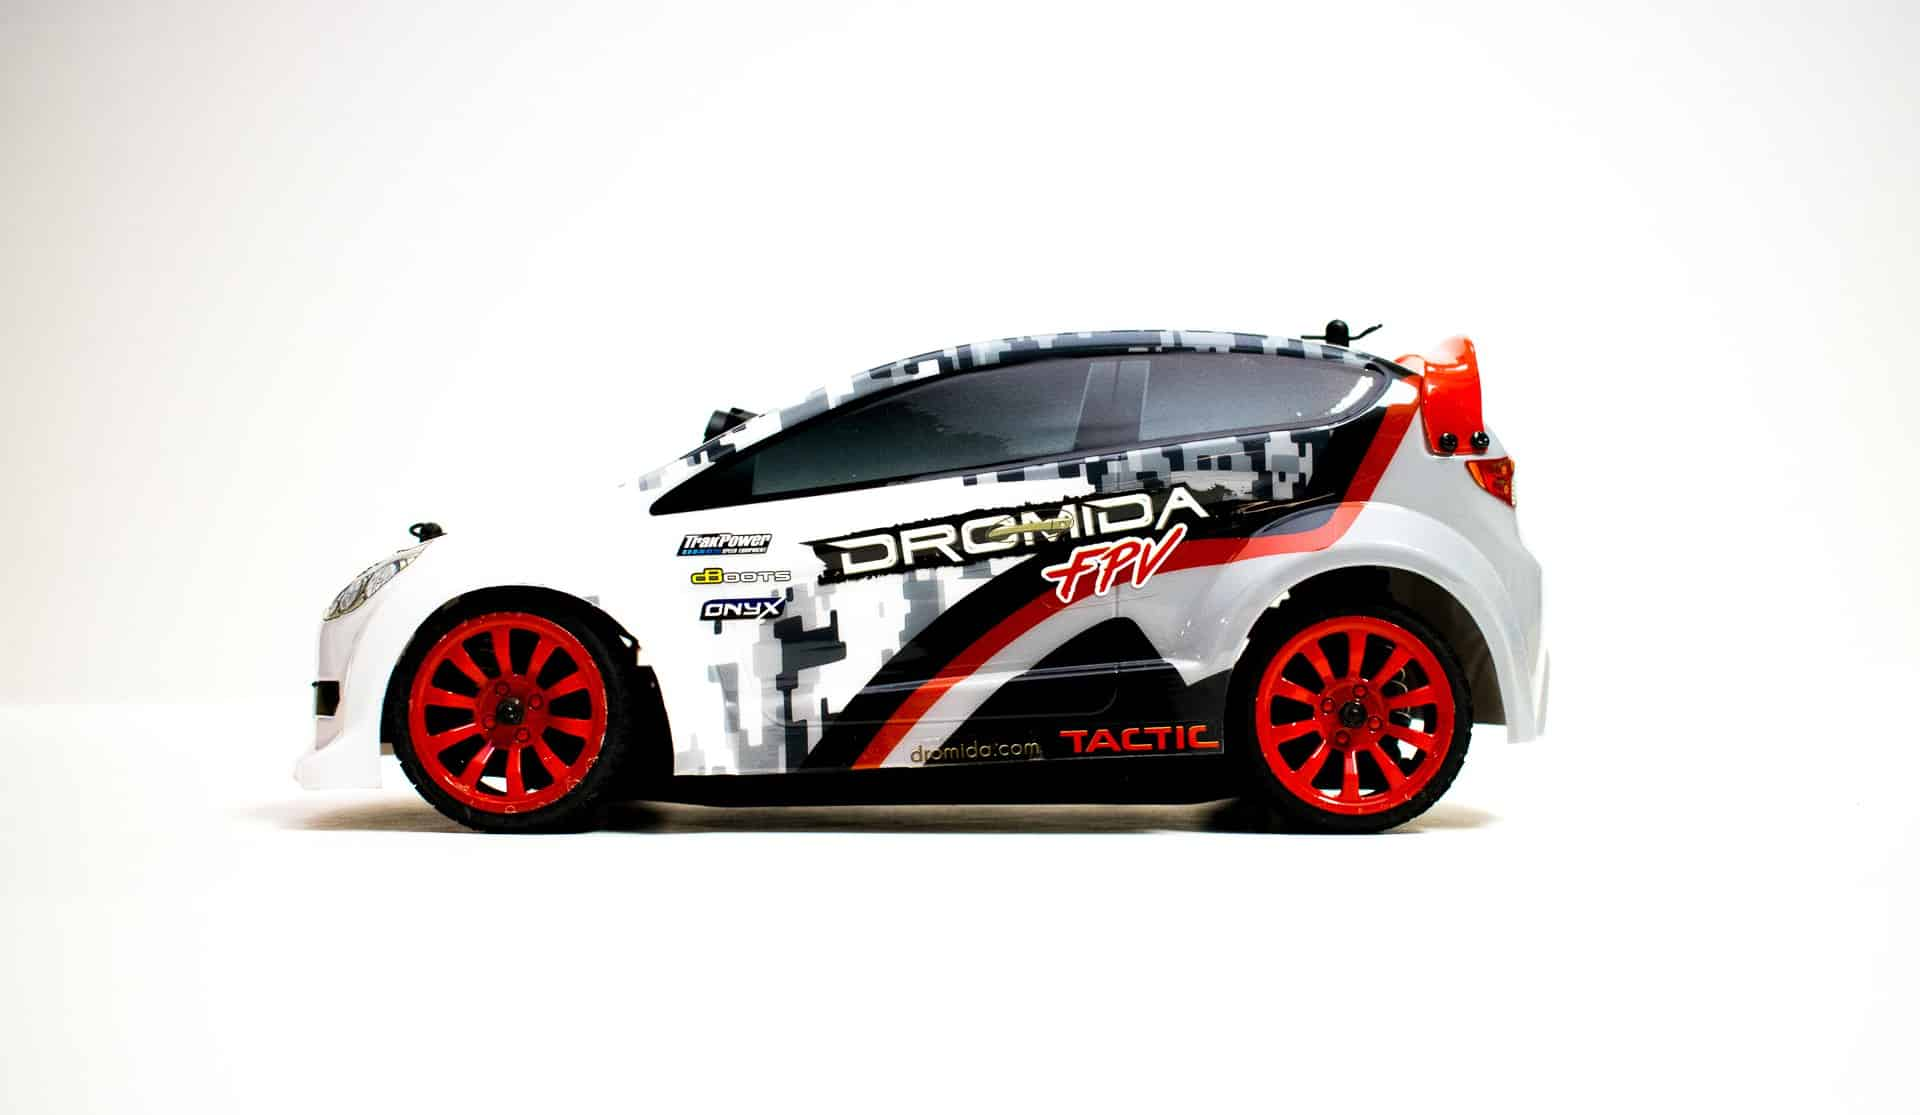 Review: Dromida's FPV Rally Car